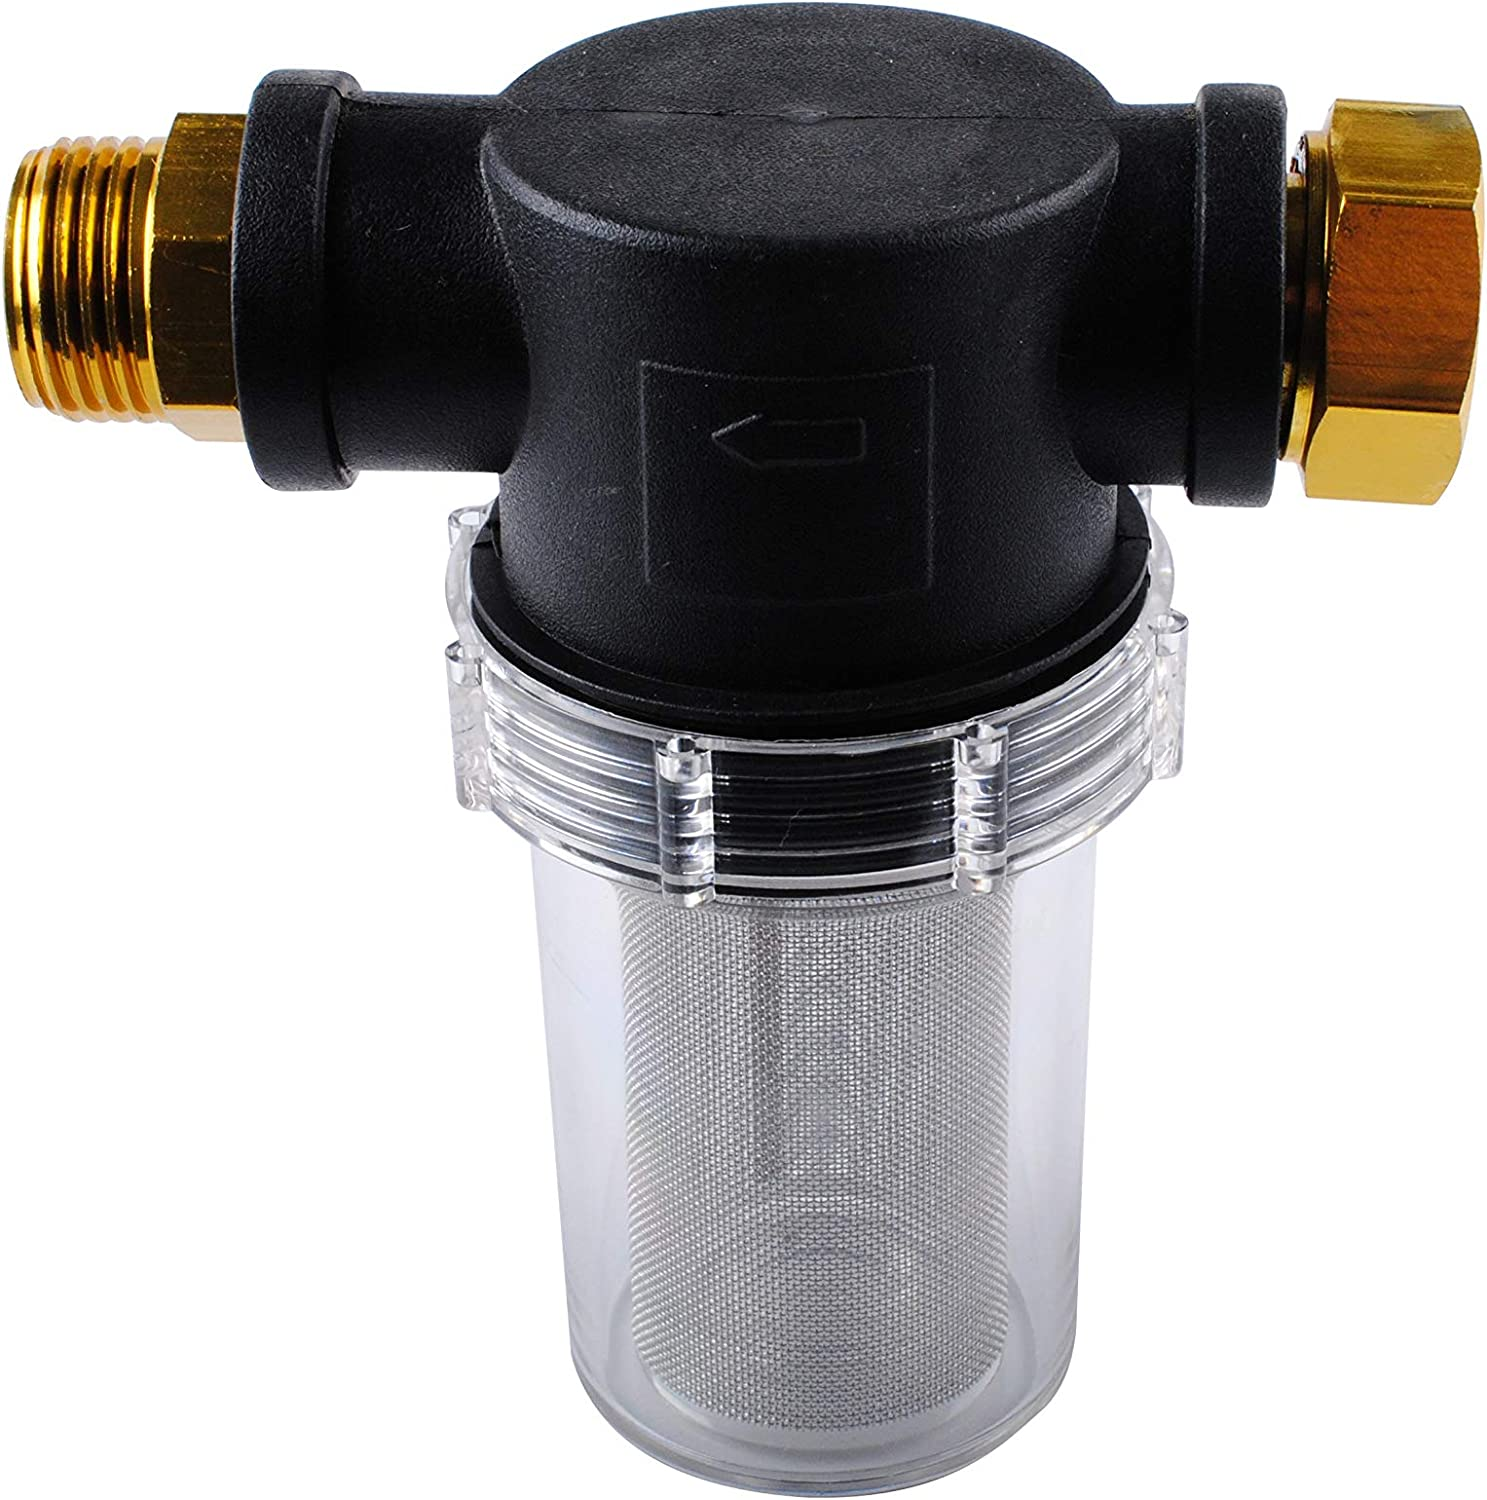 Ketofa Sediment Filter Attachment Garden Hose for Outdoor Gardening Inlet Water and Pressure Washers (40 Mesh)